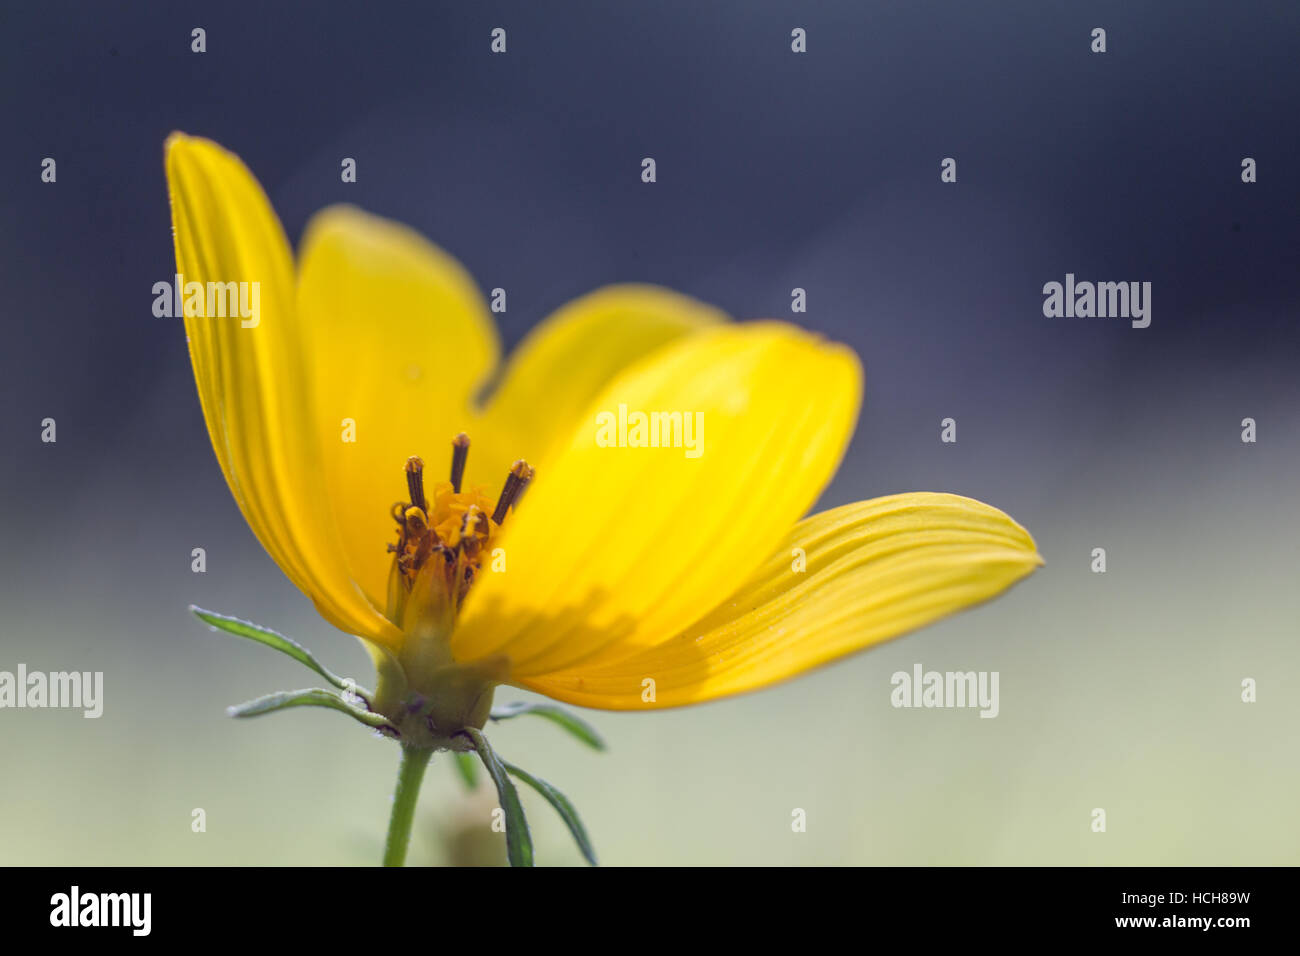 Yellow flower with brown center stock photos yellow flower with small yellow flower with textured petals with a gap showing the center of the flower with mightylinksfo